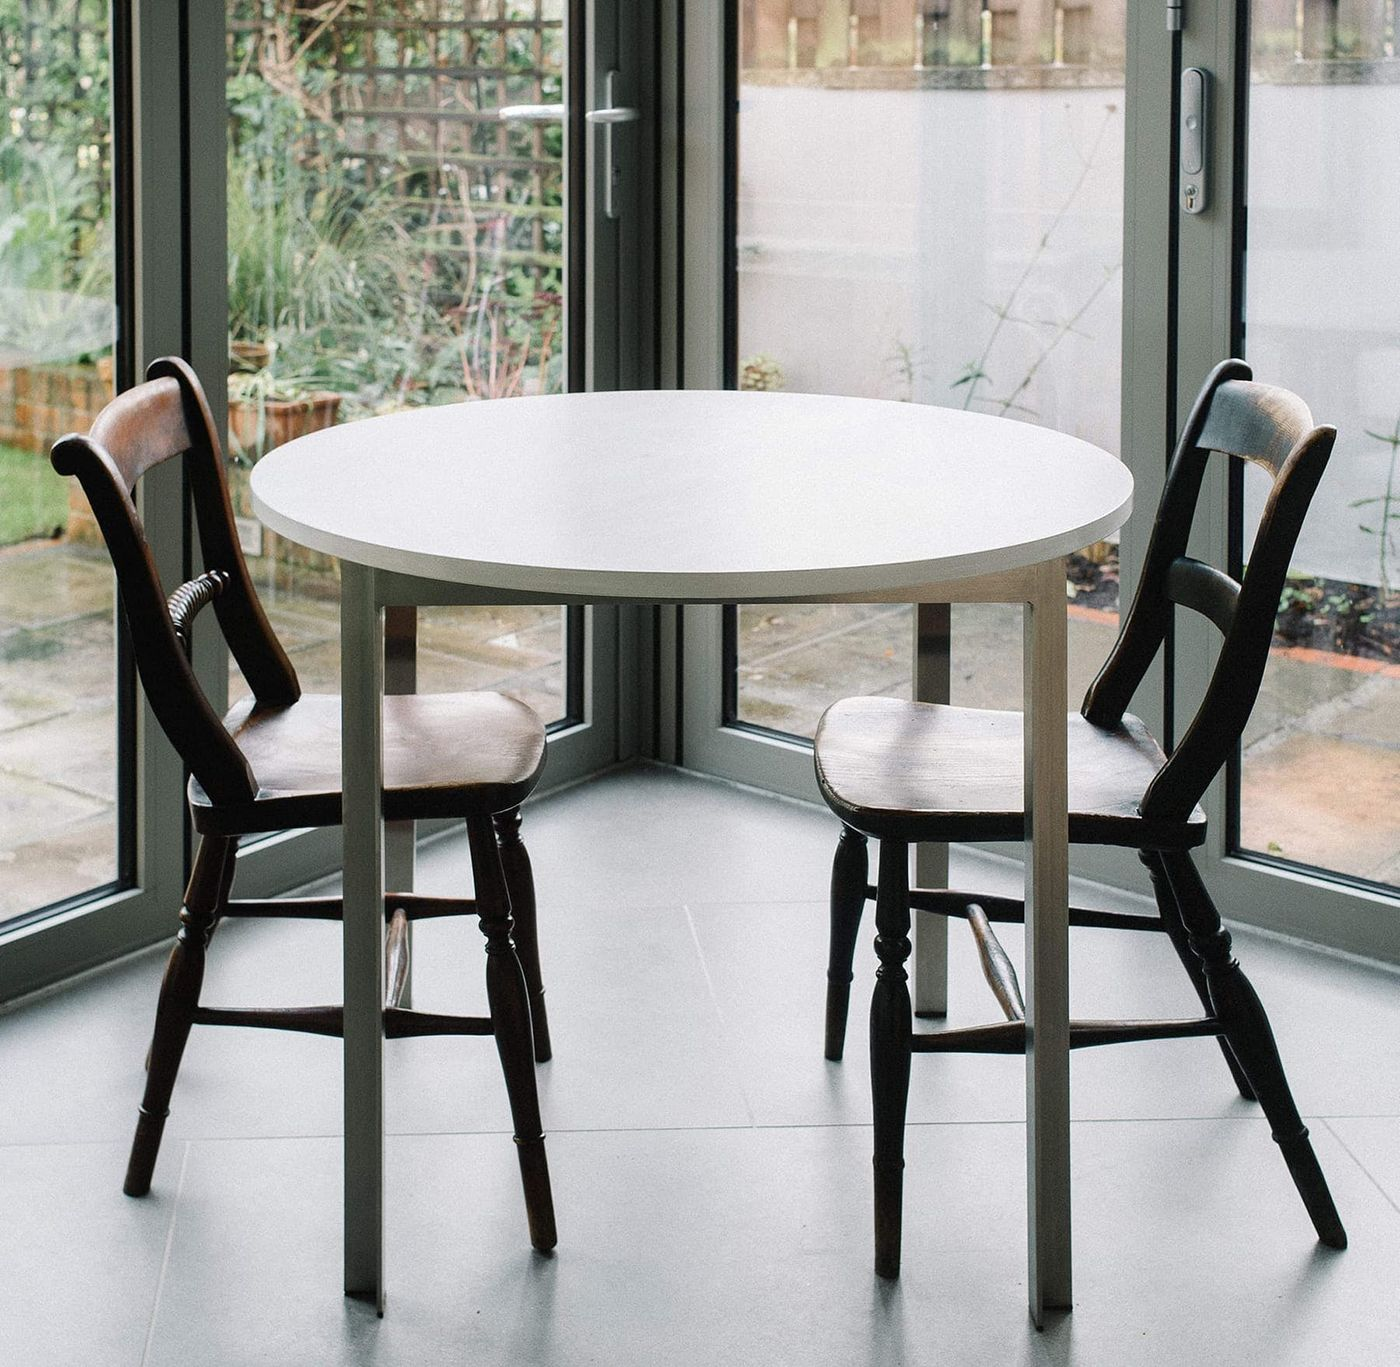 Detail view of the bespoke breakfast table designed and manufactured by From Works of stained light grey birch plywood timber top and stainless steel angle legs.